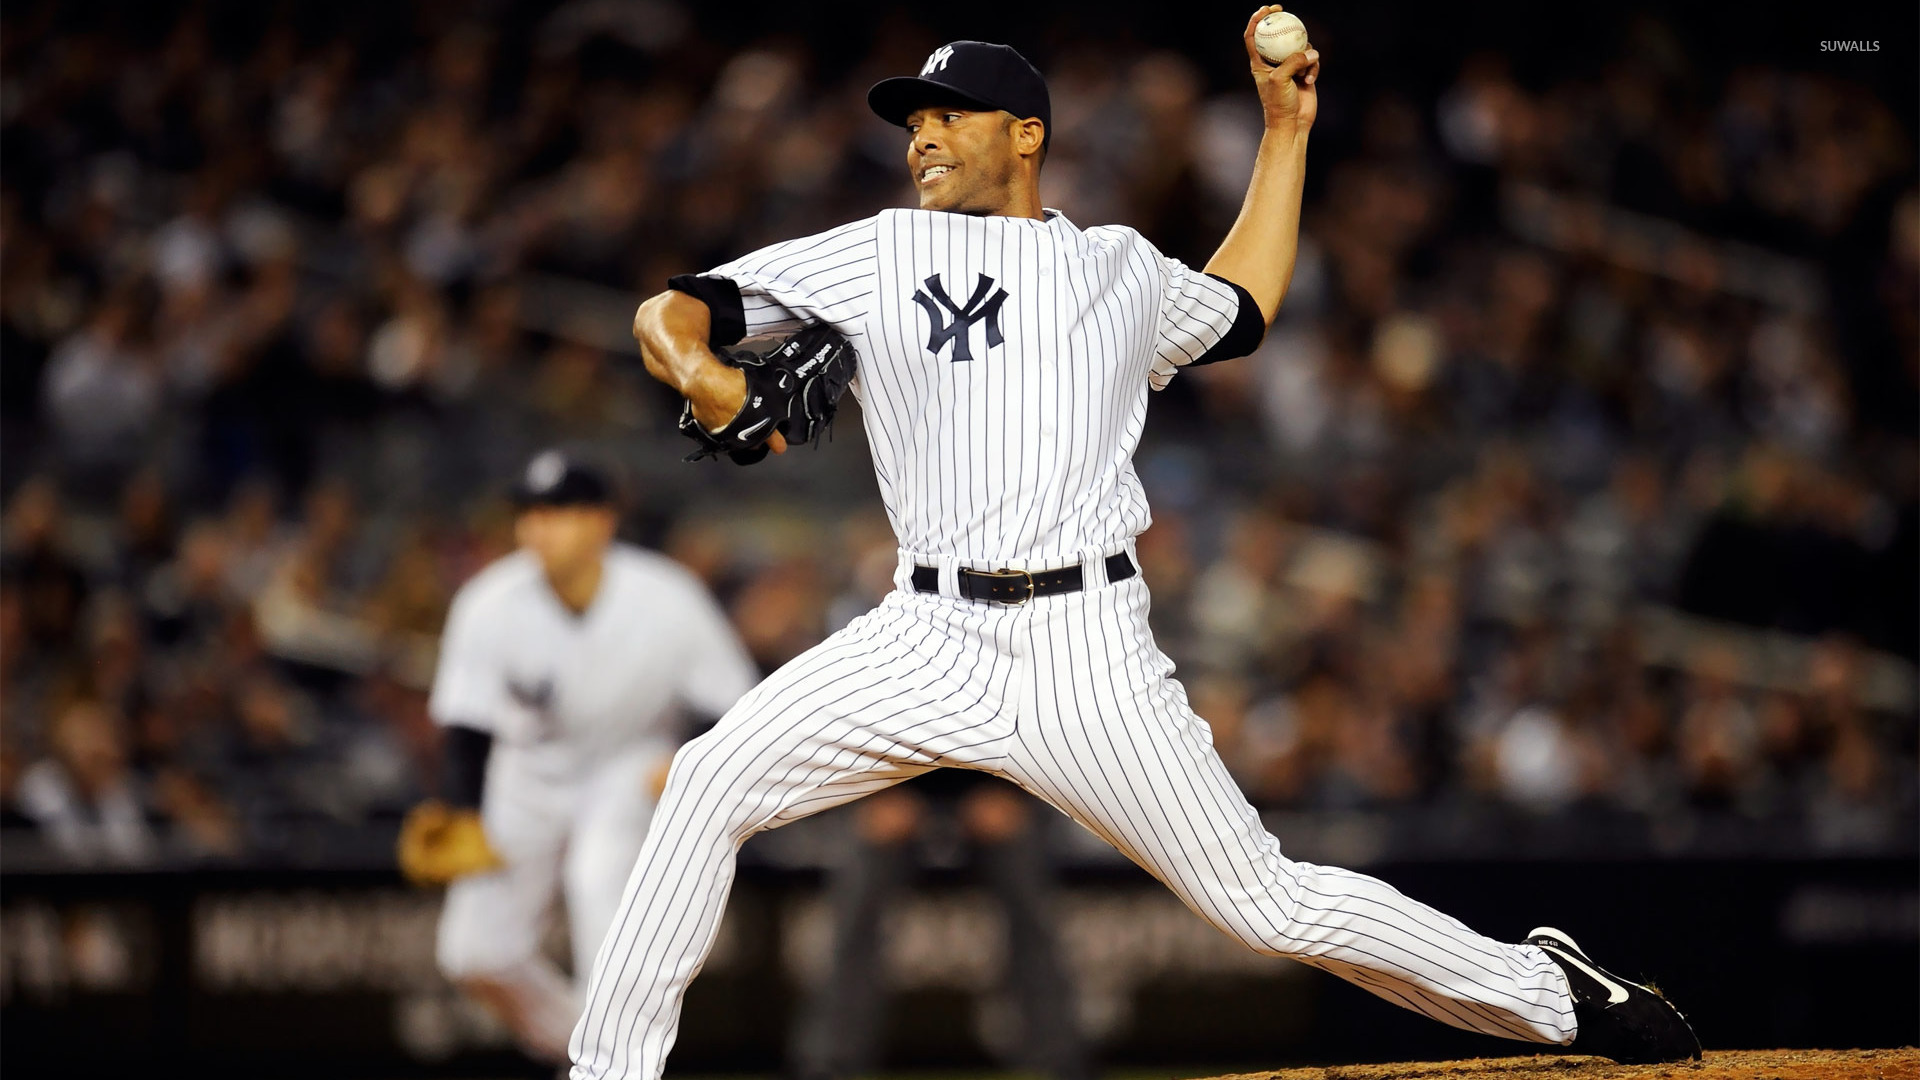 Mariano Rivera wallpaper - 828134